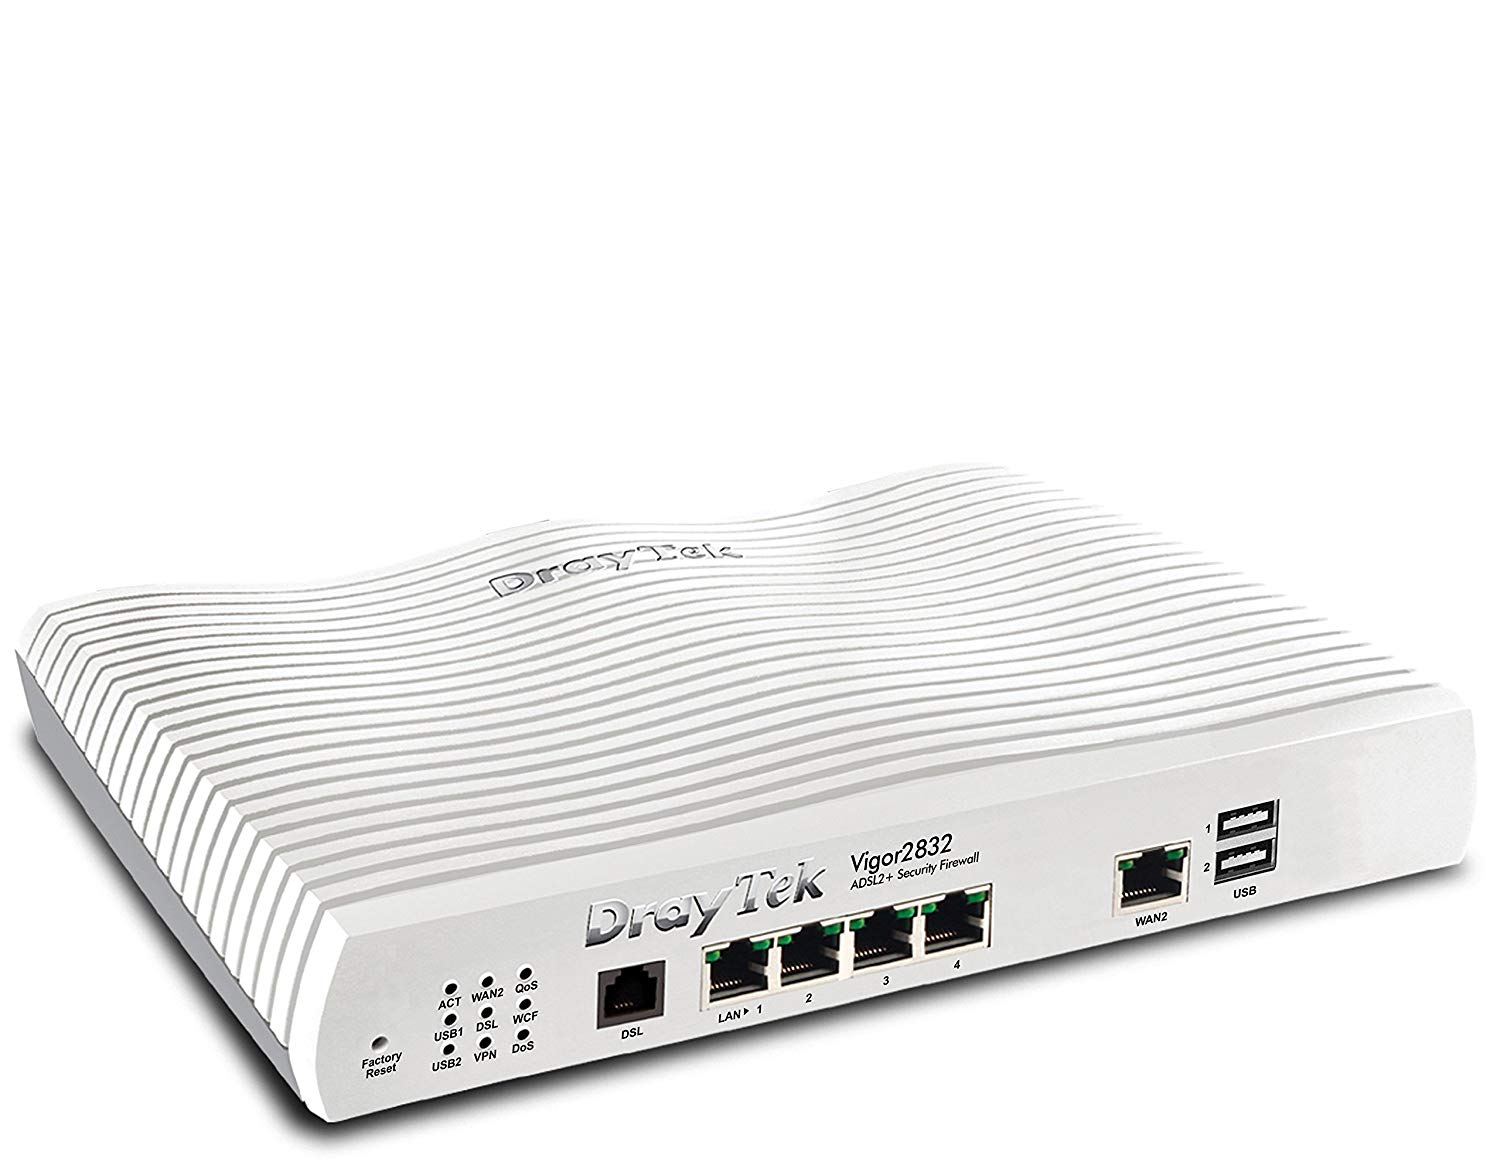 Draytek Vigor 2832 Series ADSL Router